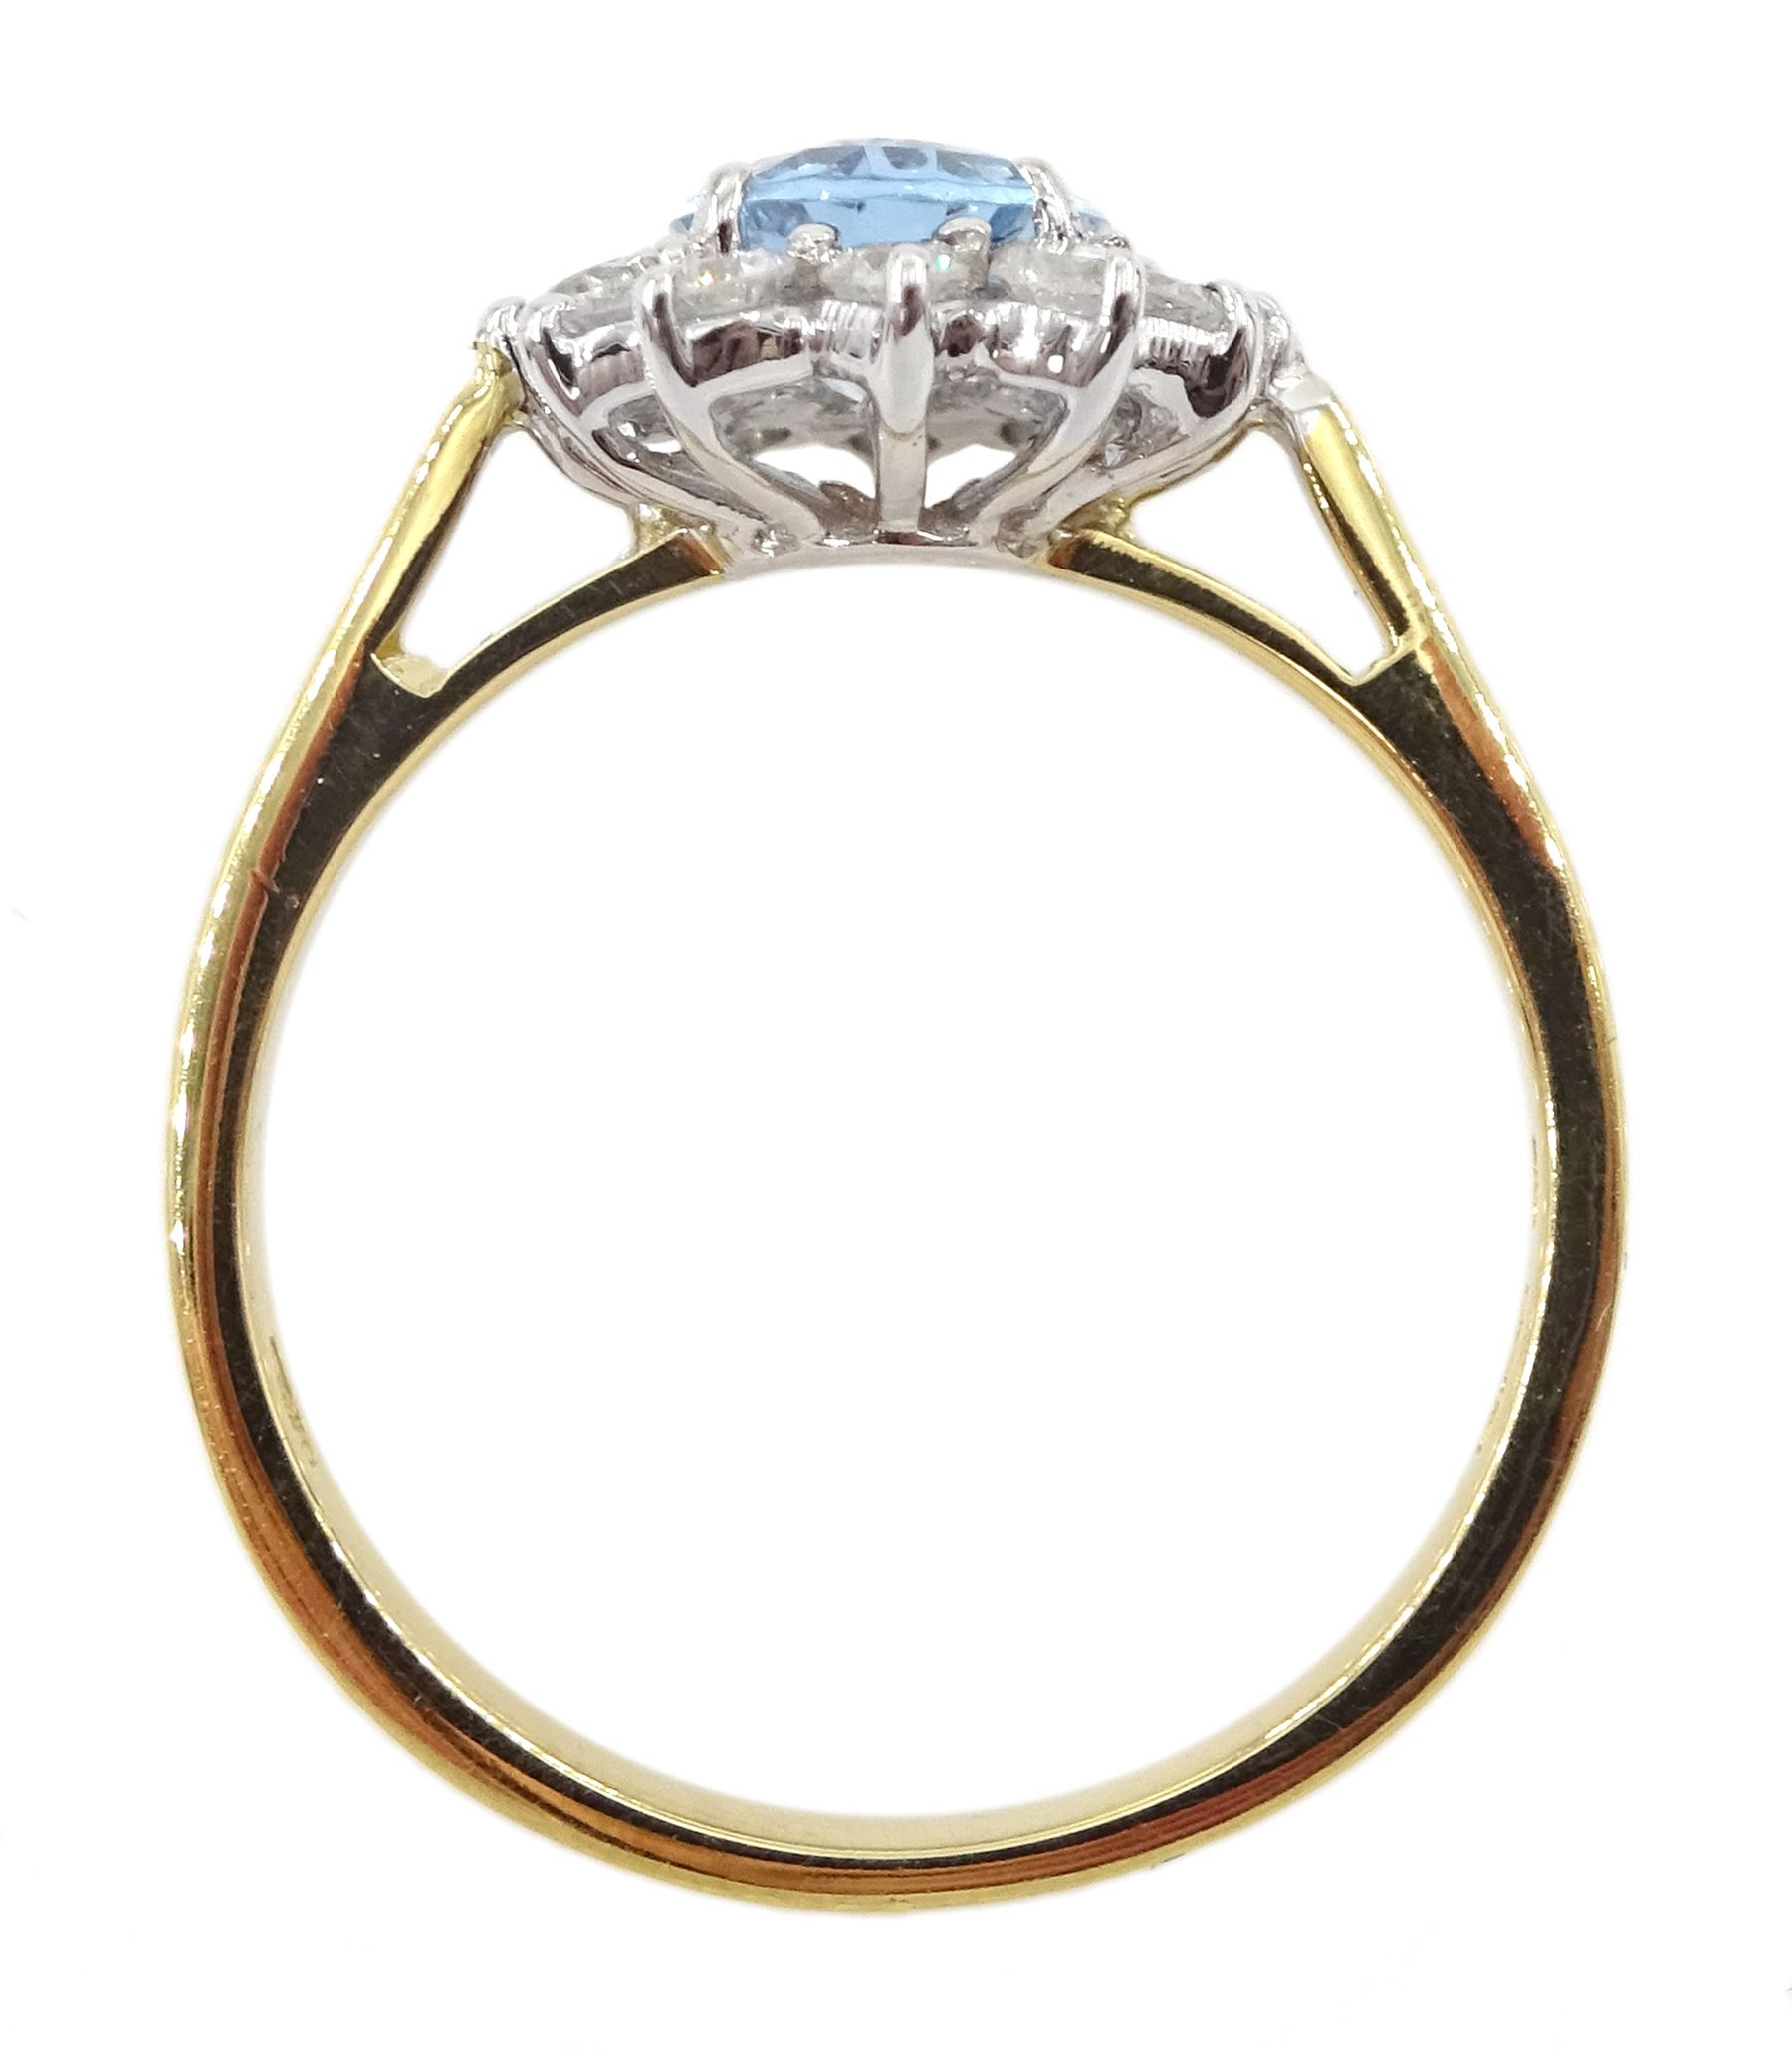 18ct gold oval aquamarine and round brilliant cut diamond cluster ring - Image 4 of 4